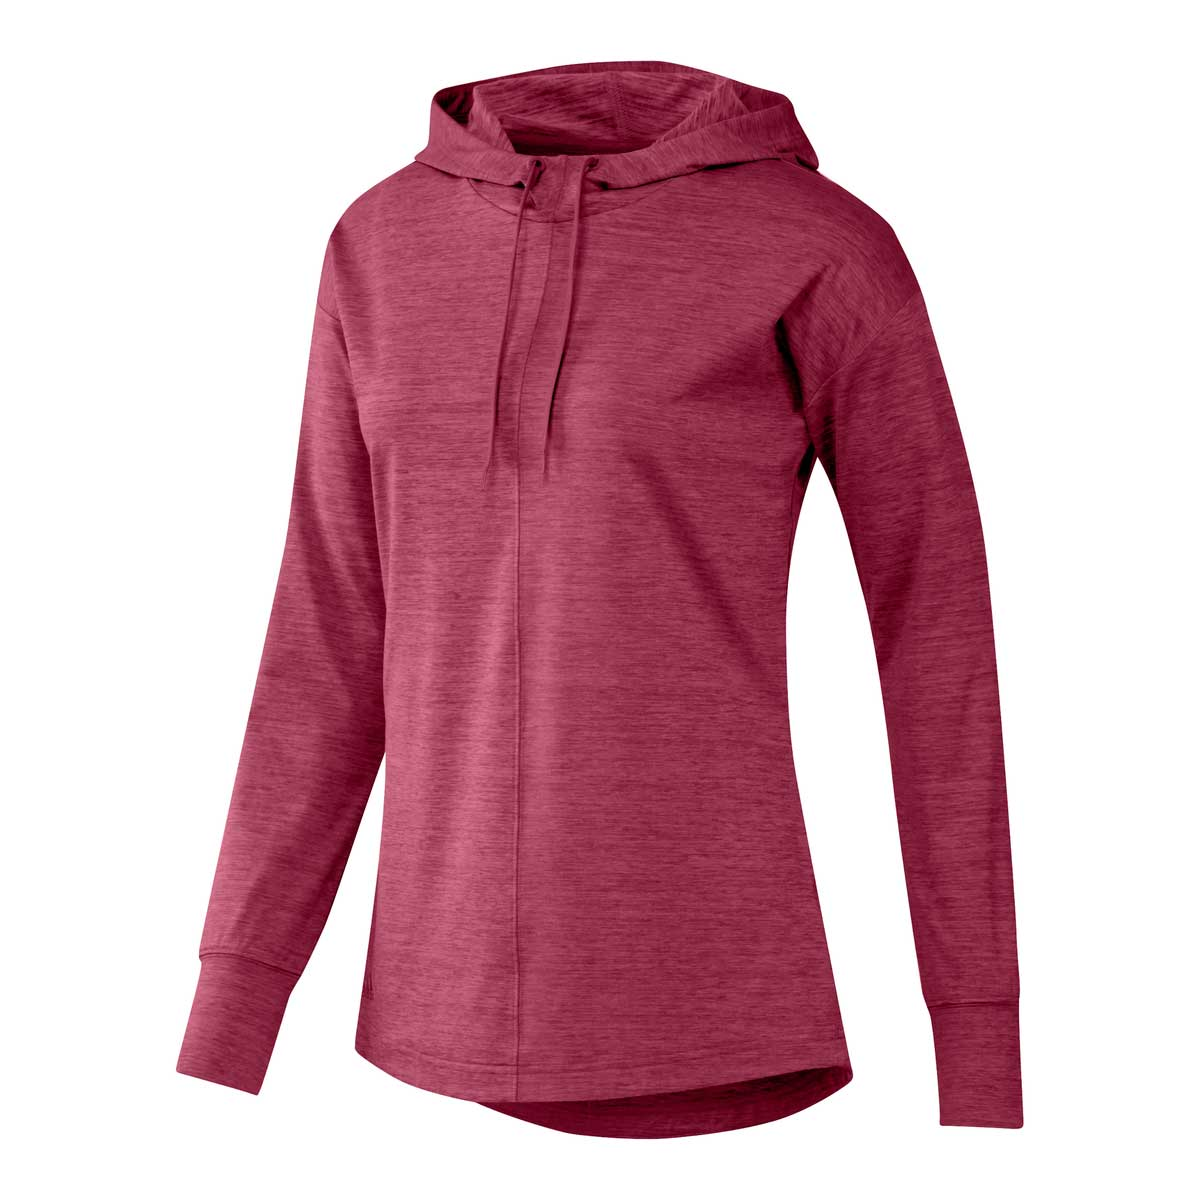 Adidas Women's Essentials Heathered Wild Pink Hoodie